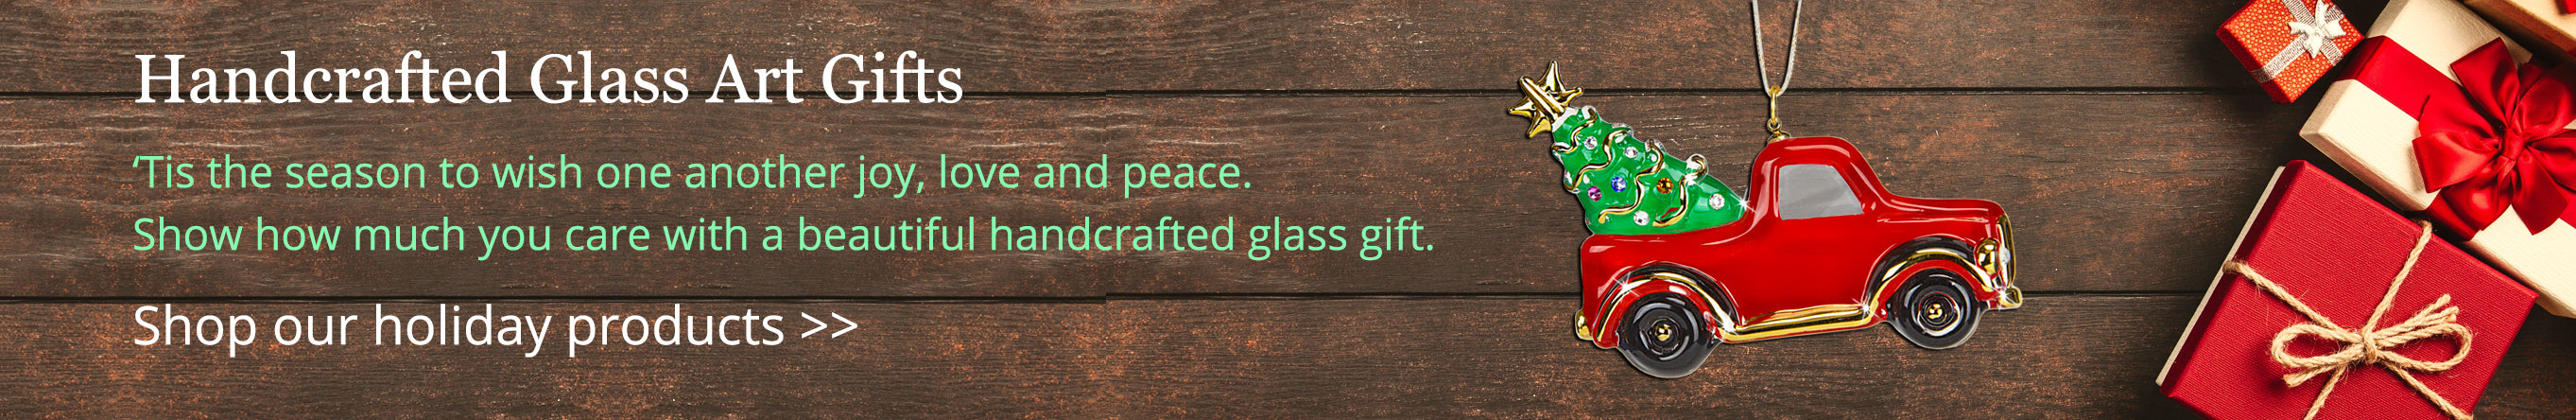 Handcrafted Glass Art Gifts. 'Tis the season to wish one another joy, love and peace. Show how much you care with a beautiful handcrafted glass gift. Shop our holiday products